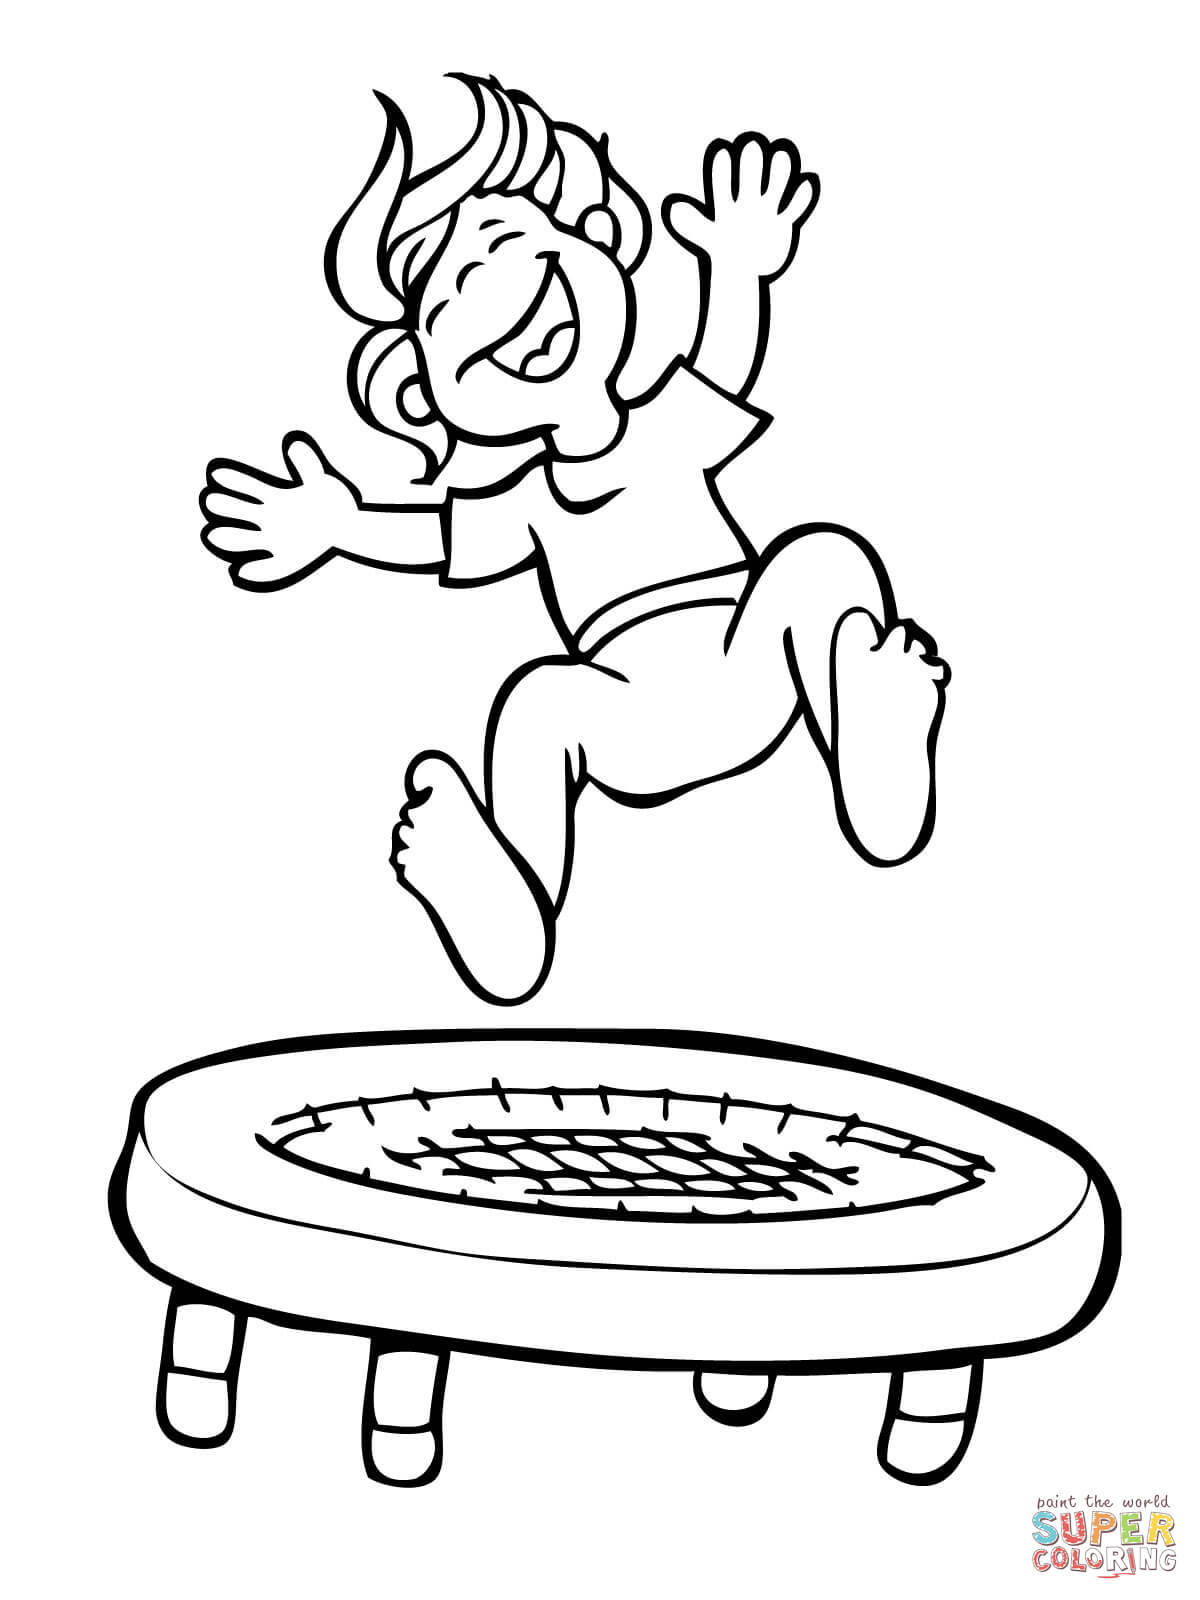 Trampoline Clipart Black And White 20 Free Cliparts